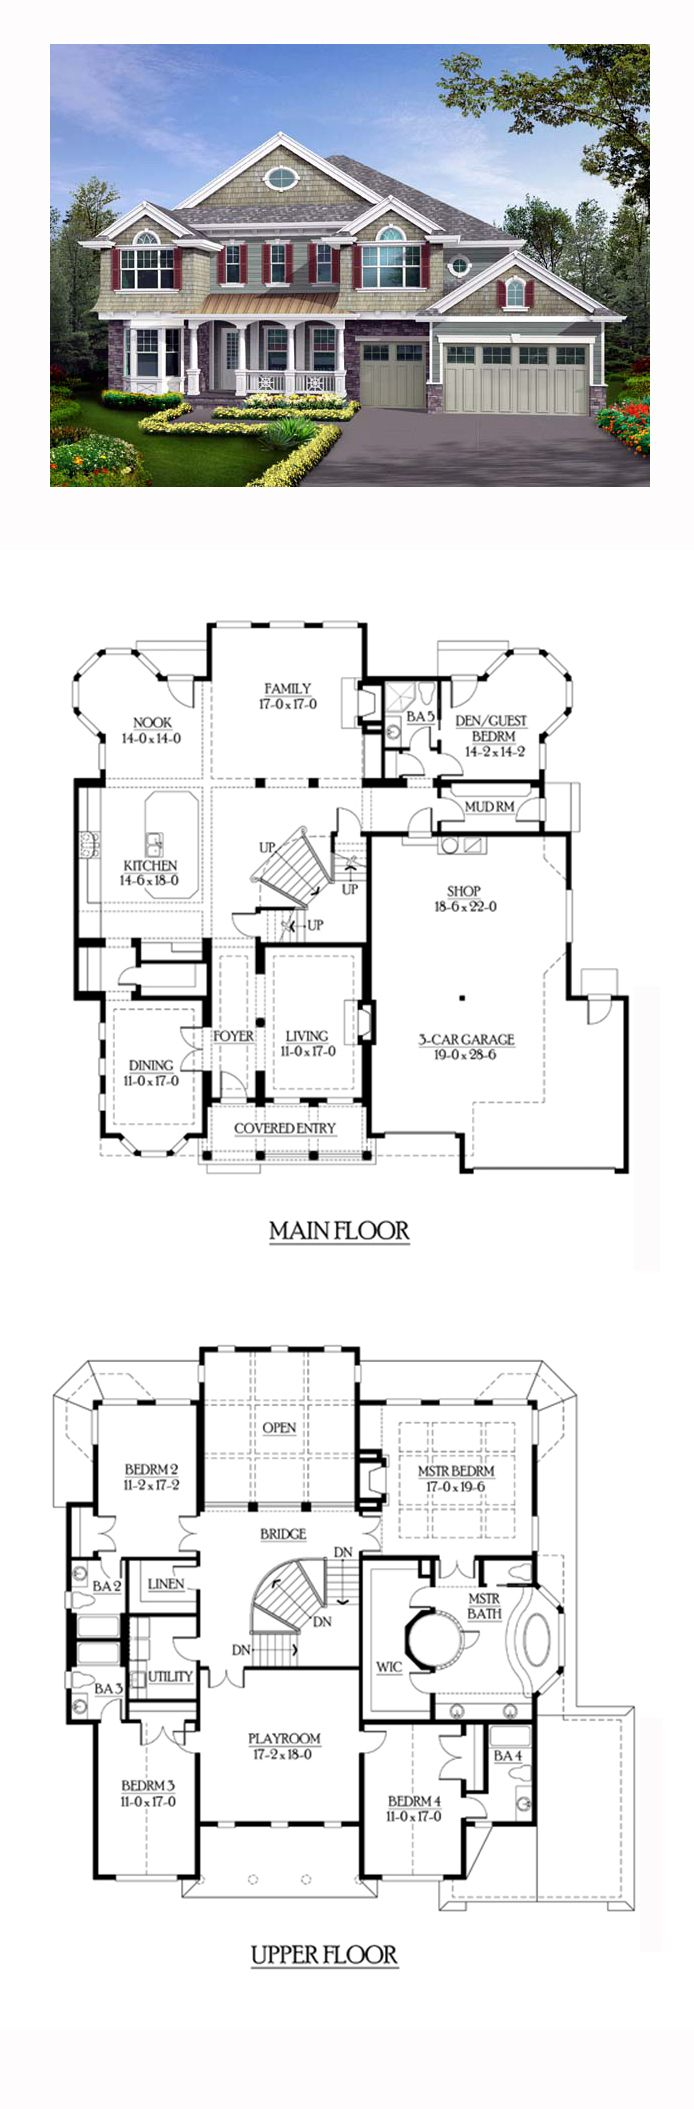 Best 25 floor plans ideas on pinterest house floor plans house layouts and house plans - Best house plans for a family of four ...